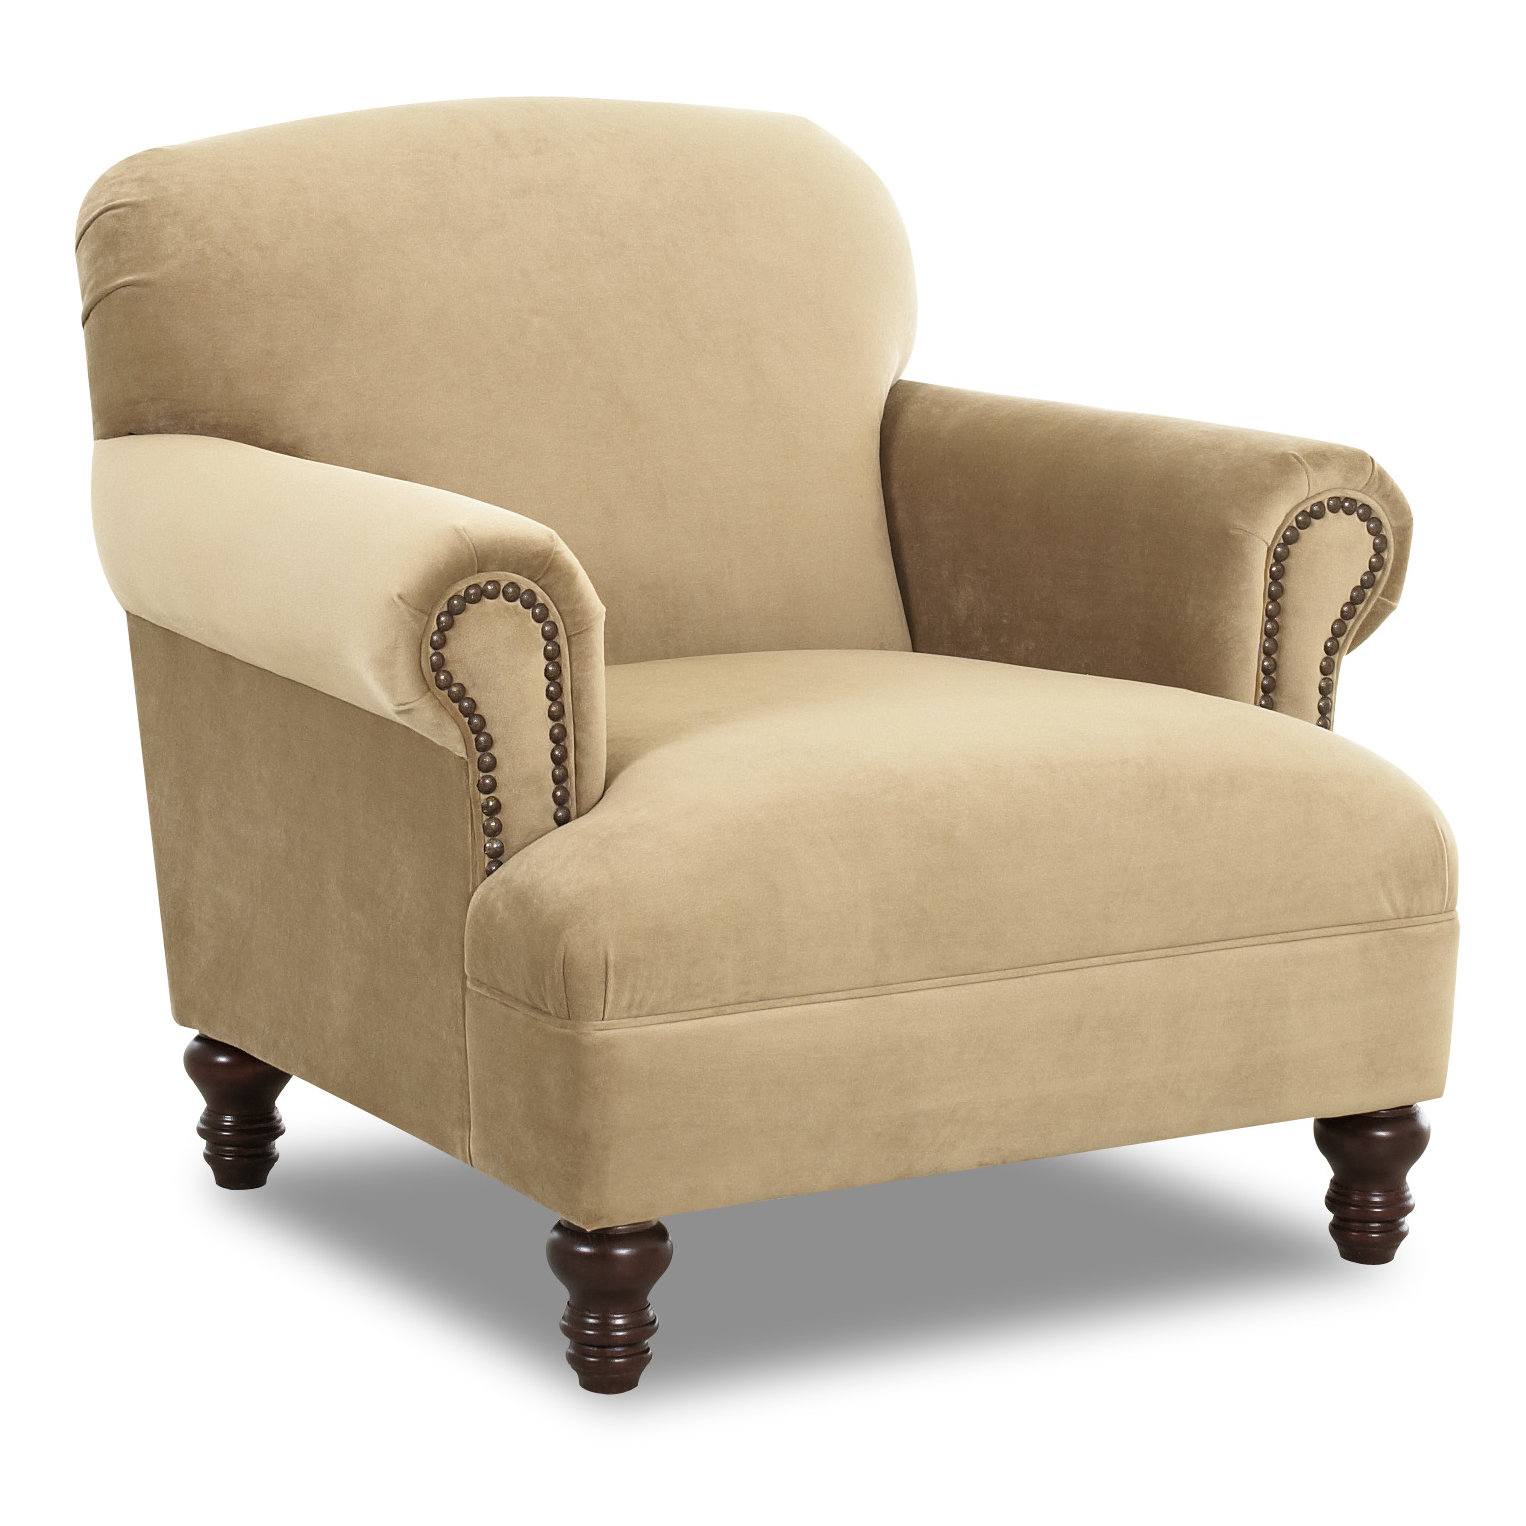 Klaussner Furniture Bailey Armchair & Reviews | Wayfair In Bailey Angled Track Arm Swivel Gliders (Image 16 of 25)